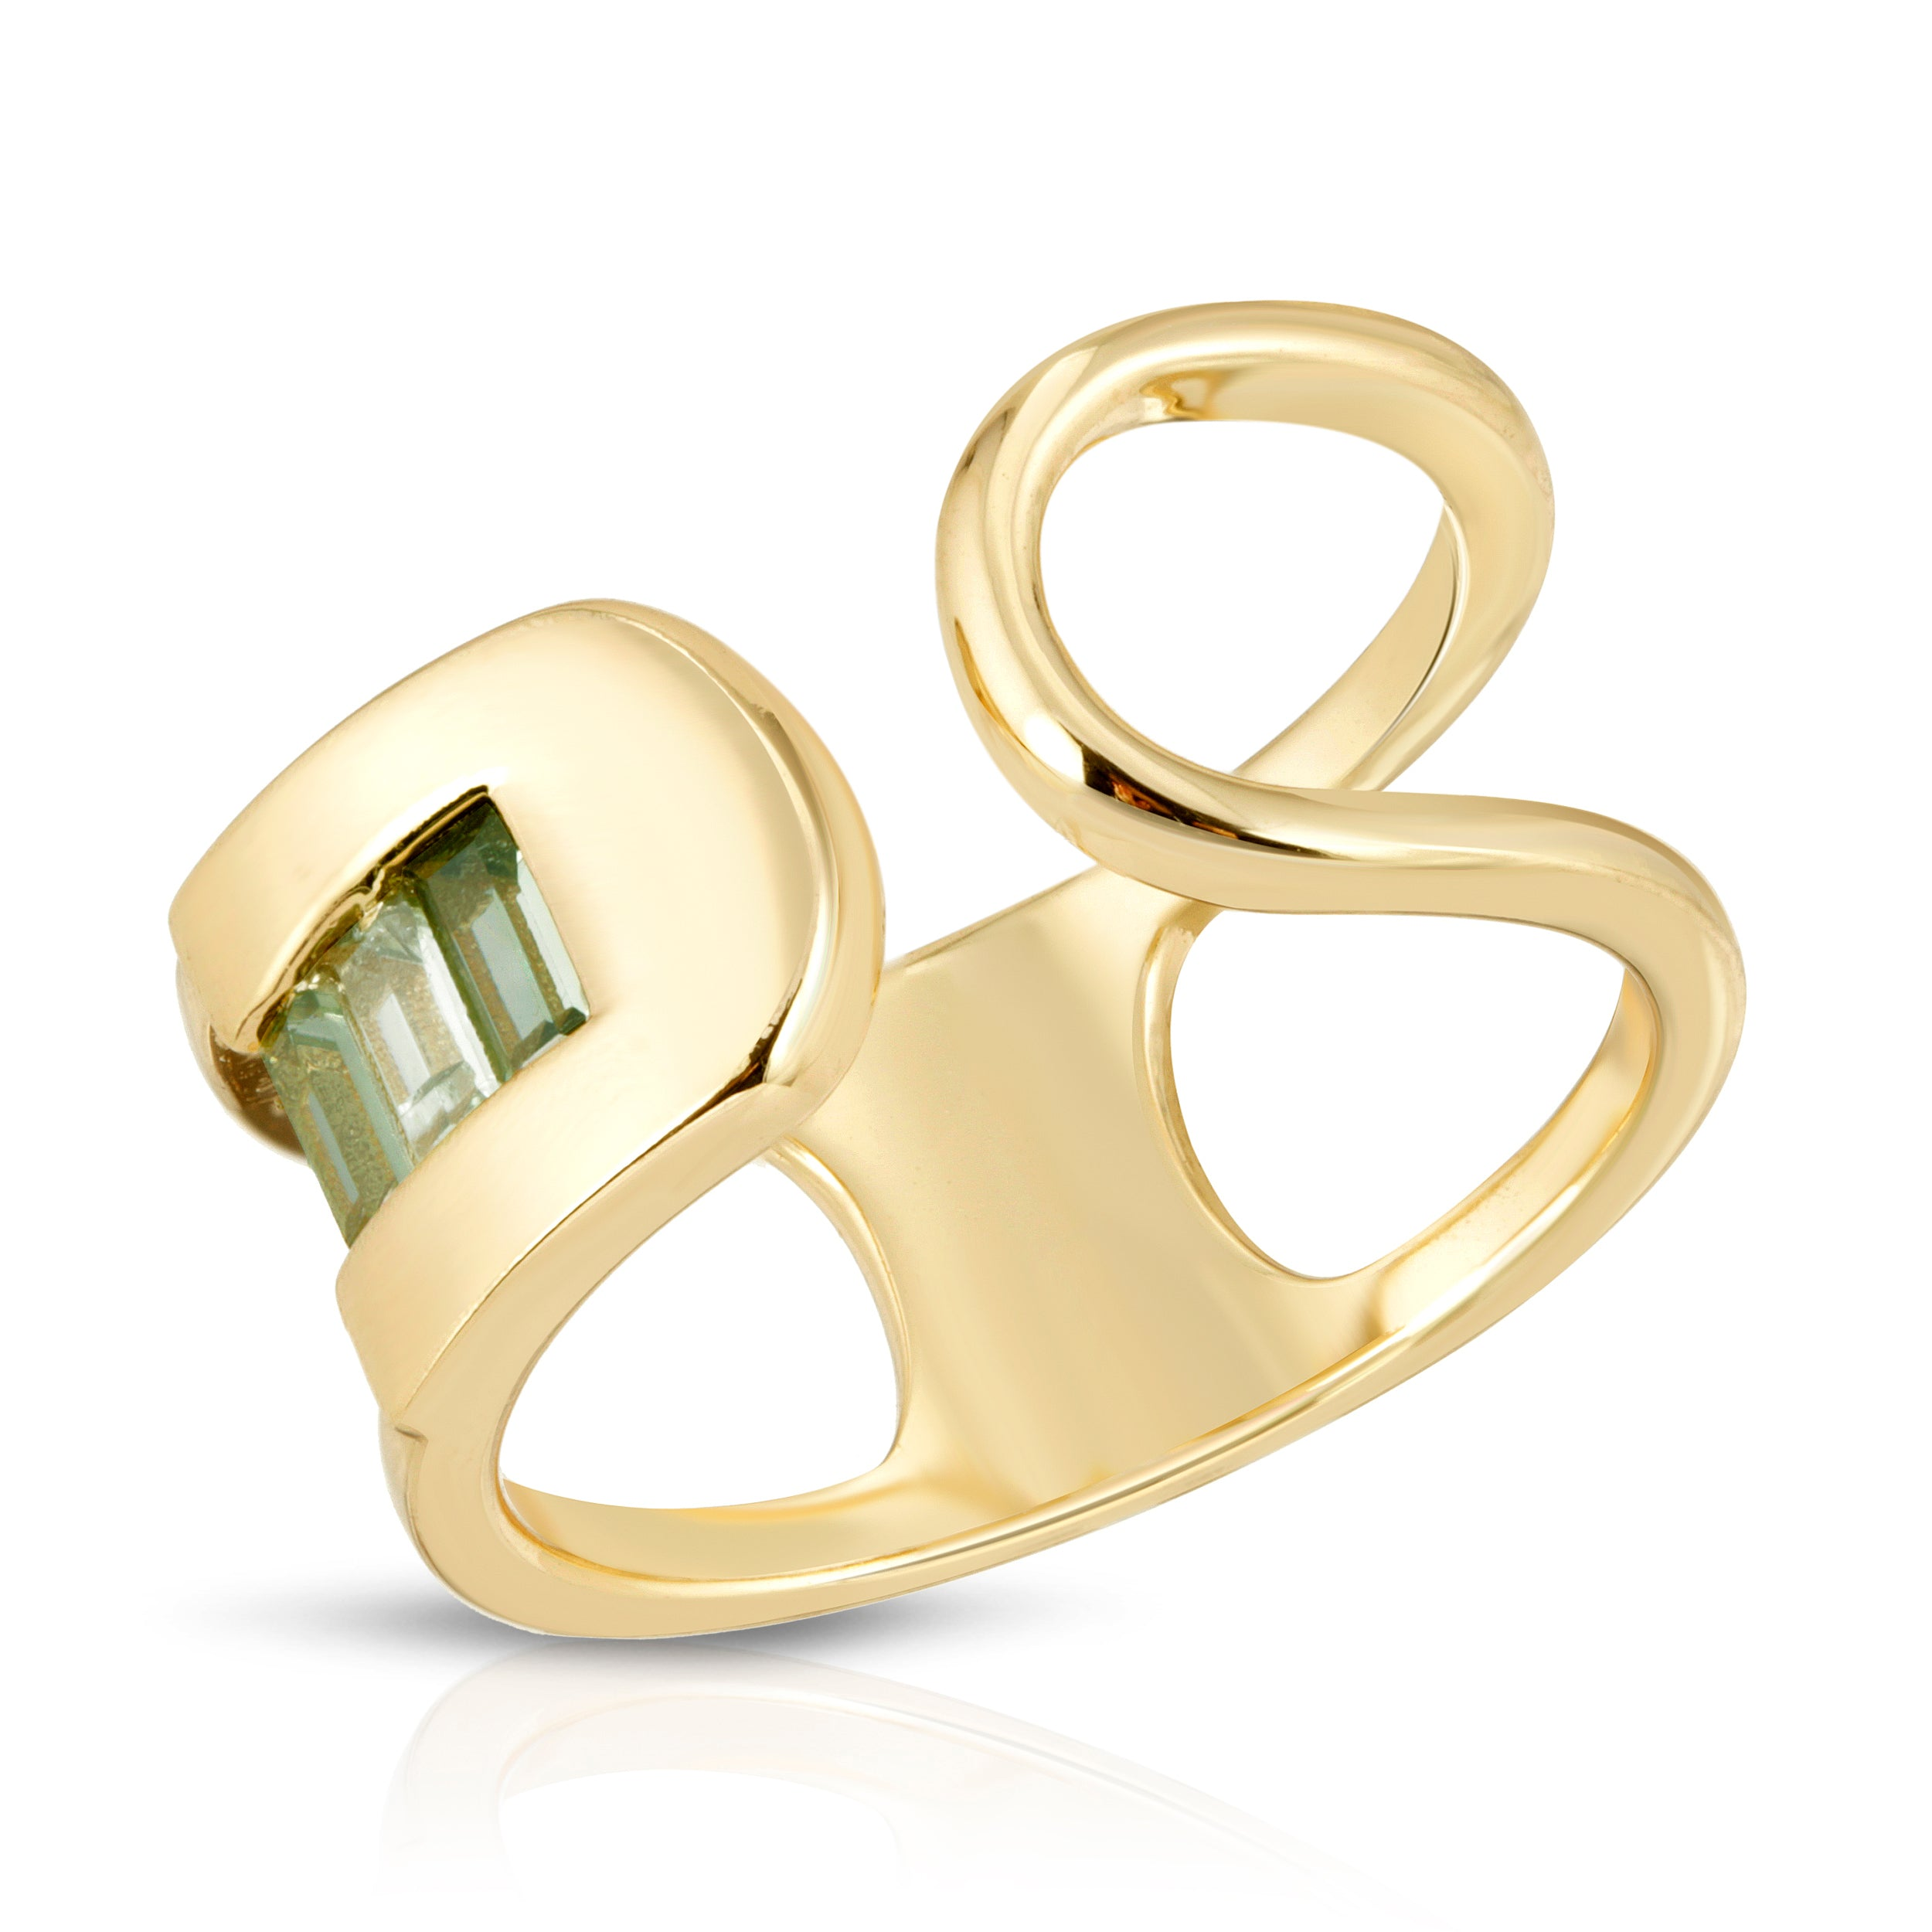 Century Safety Pin Ring - Green CZ